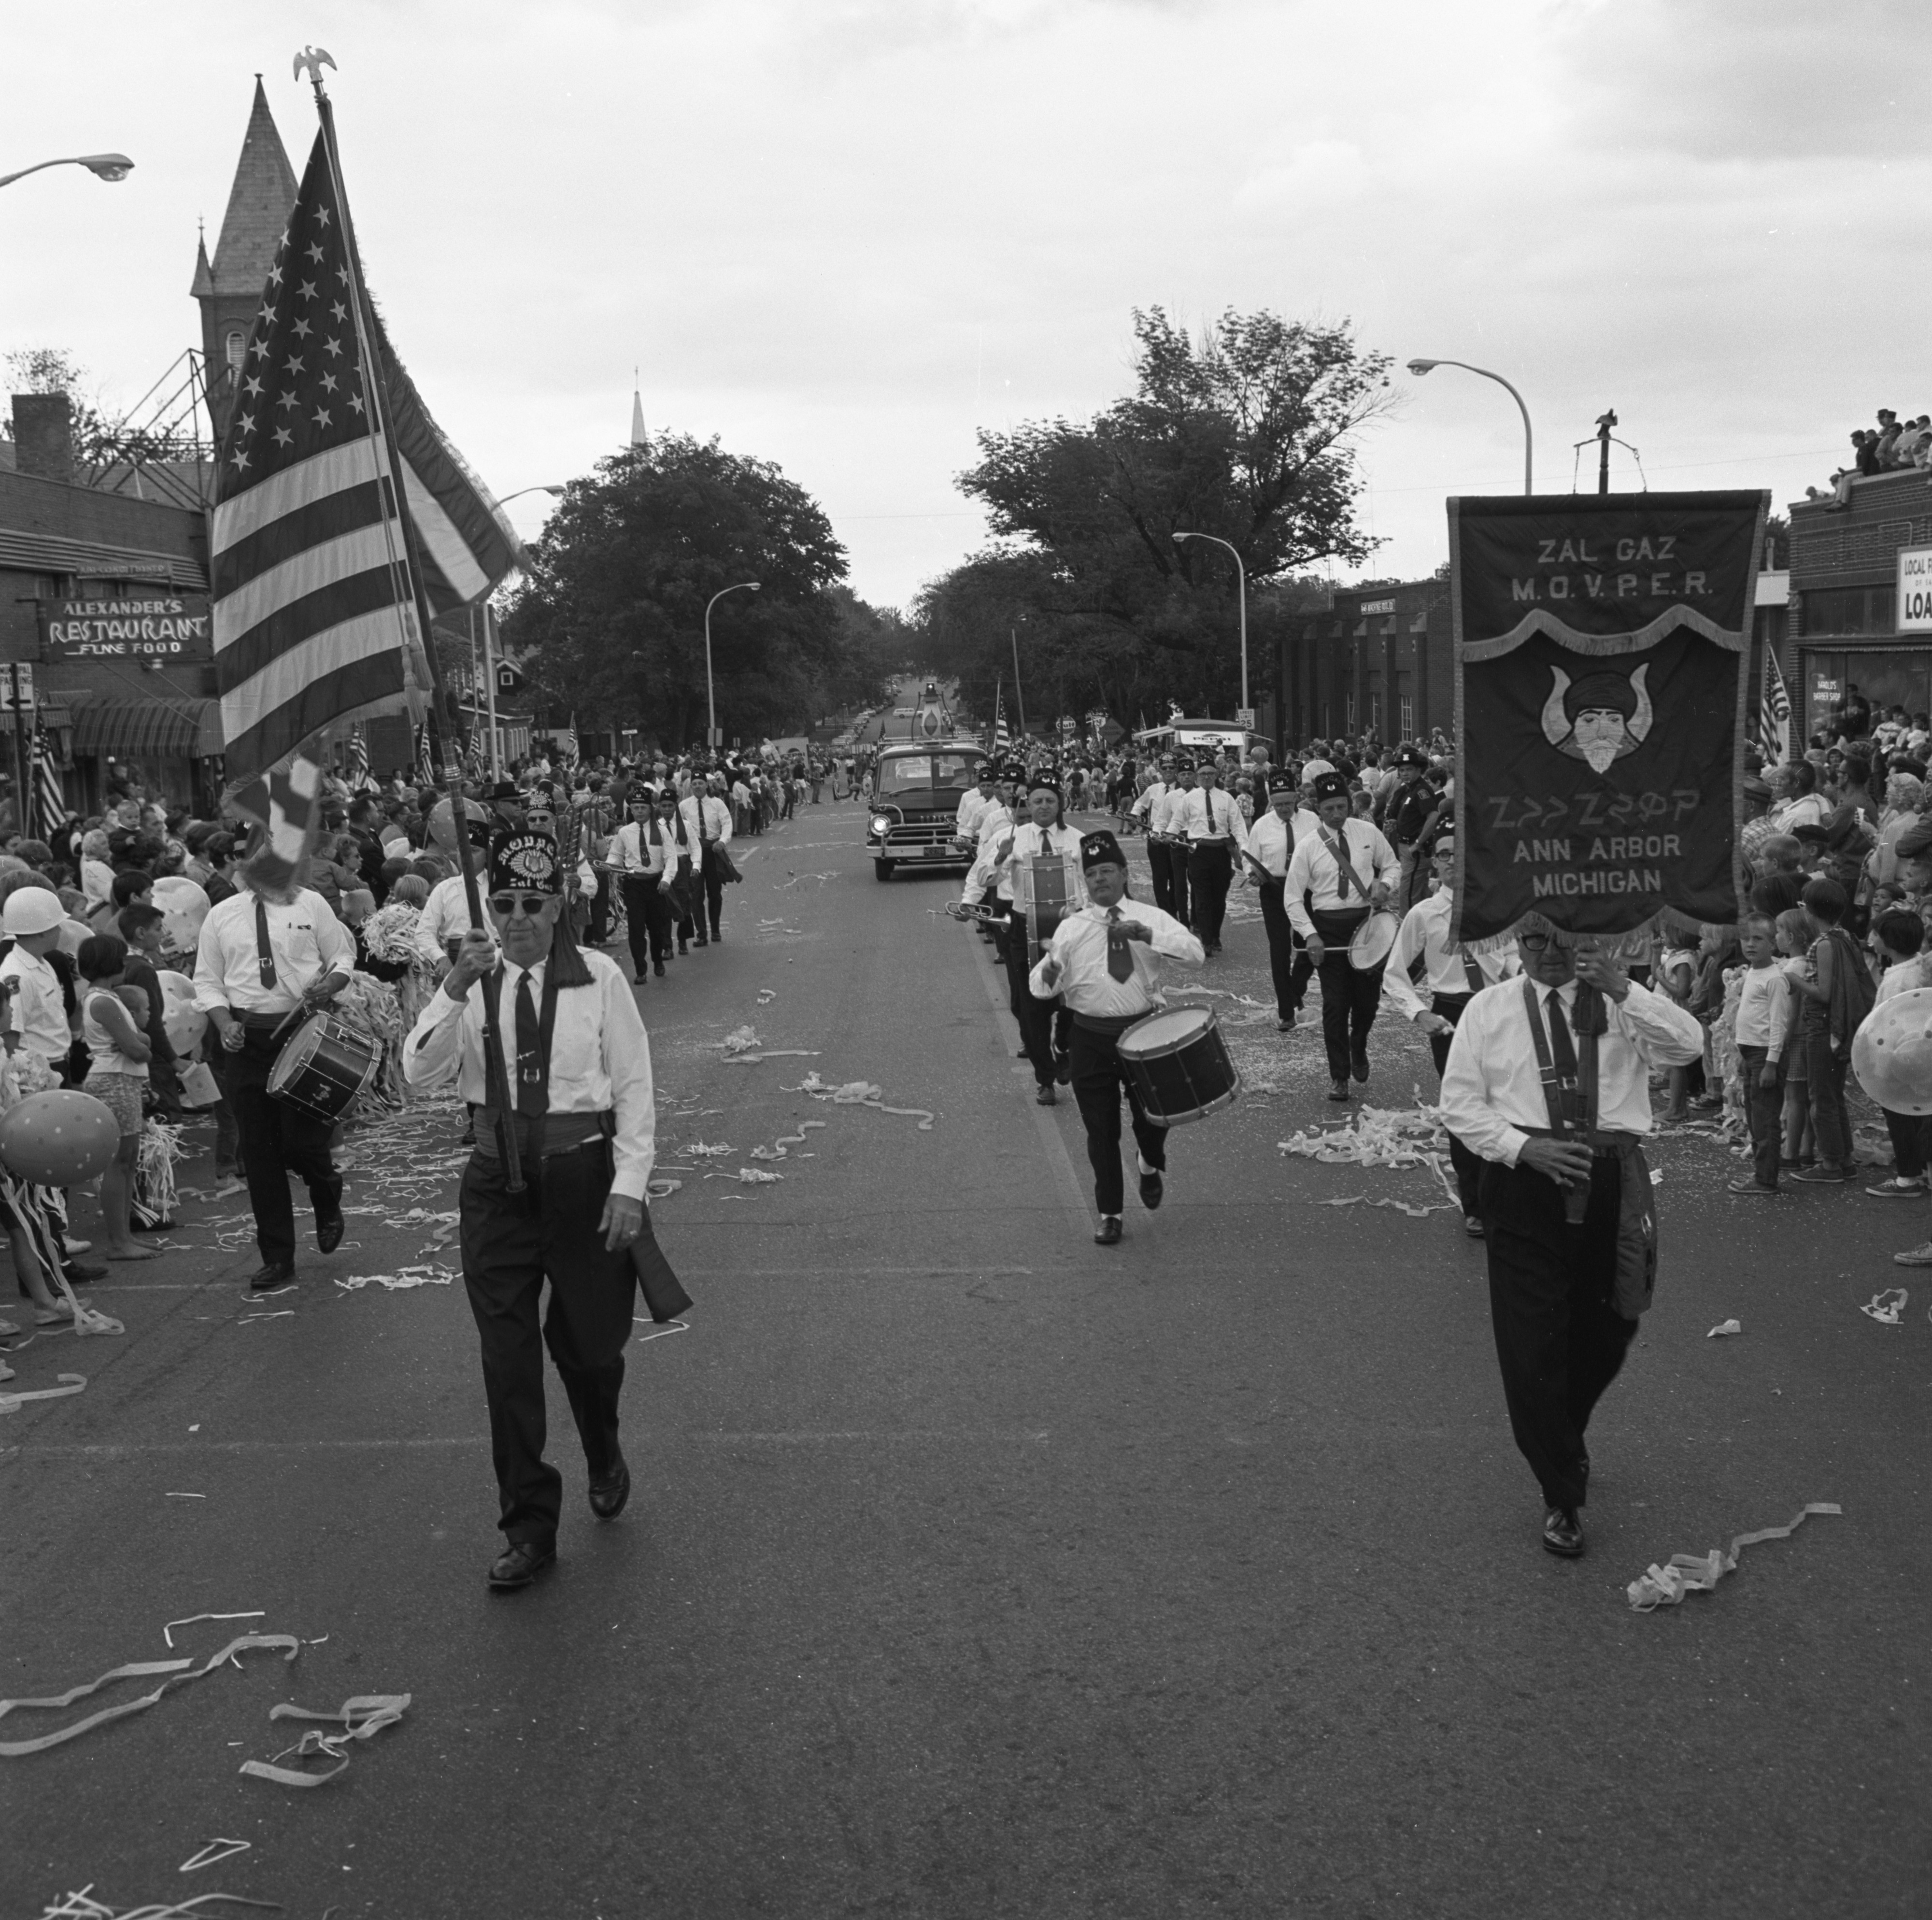 Zal Gaz Grotto Drum & Bugle Corps March In Saline Parade Honoring Aviator Ann Pellegreno's Amelia Earhart Commemorative Flight, July 1967 image